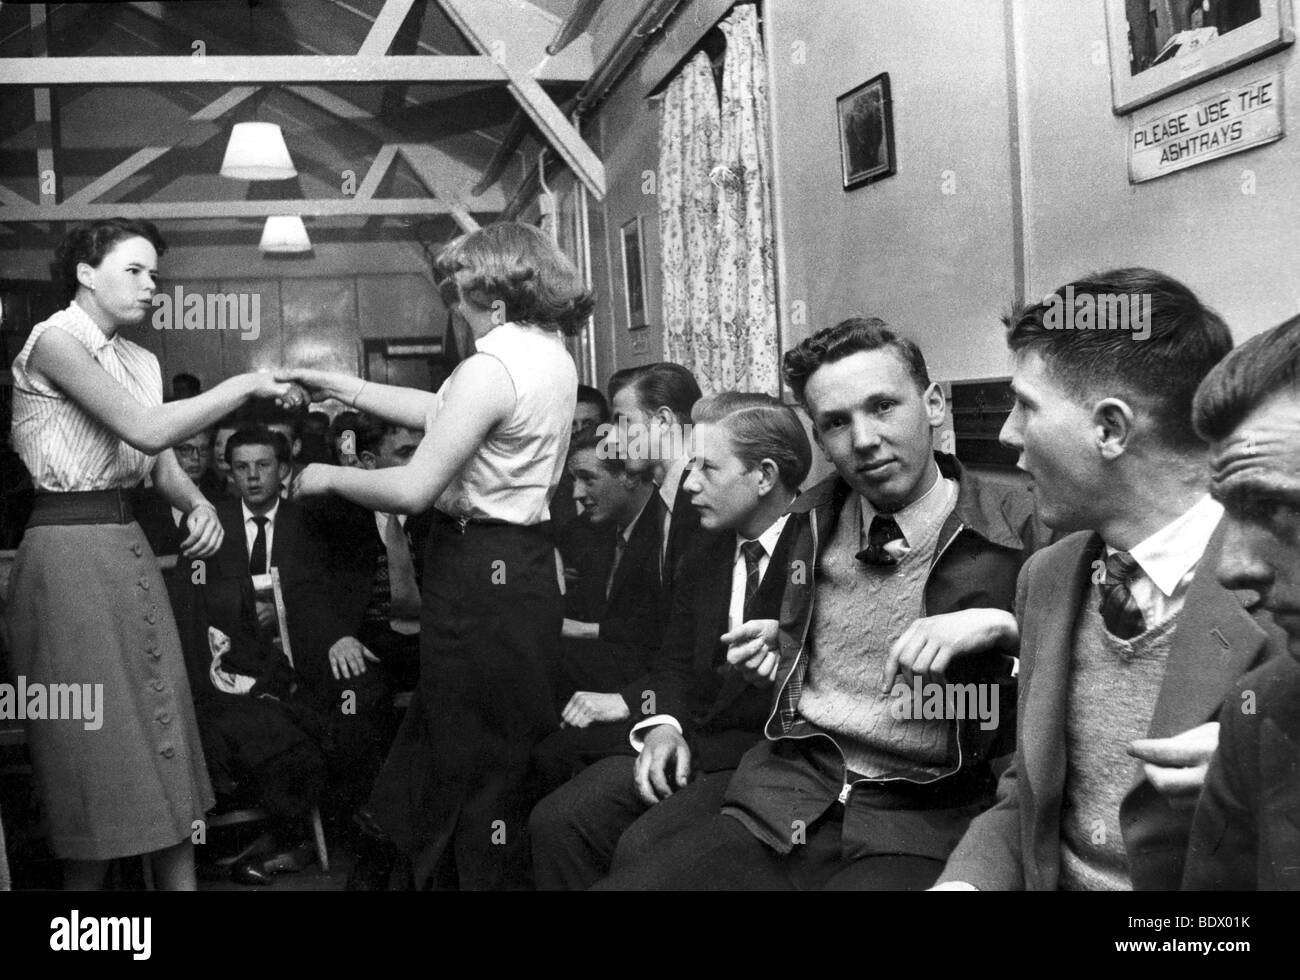 Le sud de Londres teenage dance club en 1957 Banque D'Images